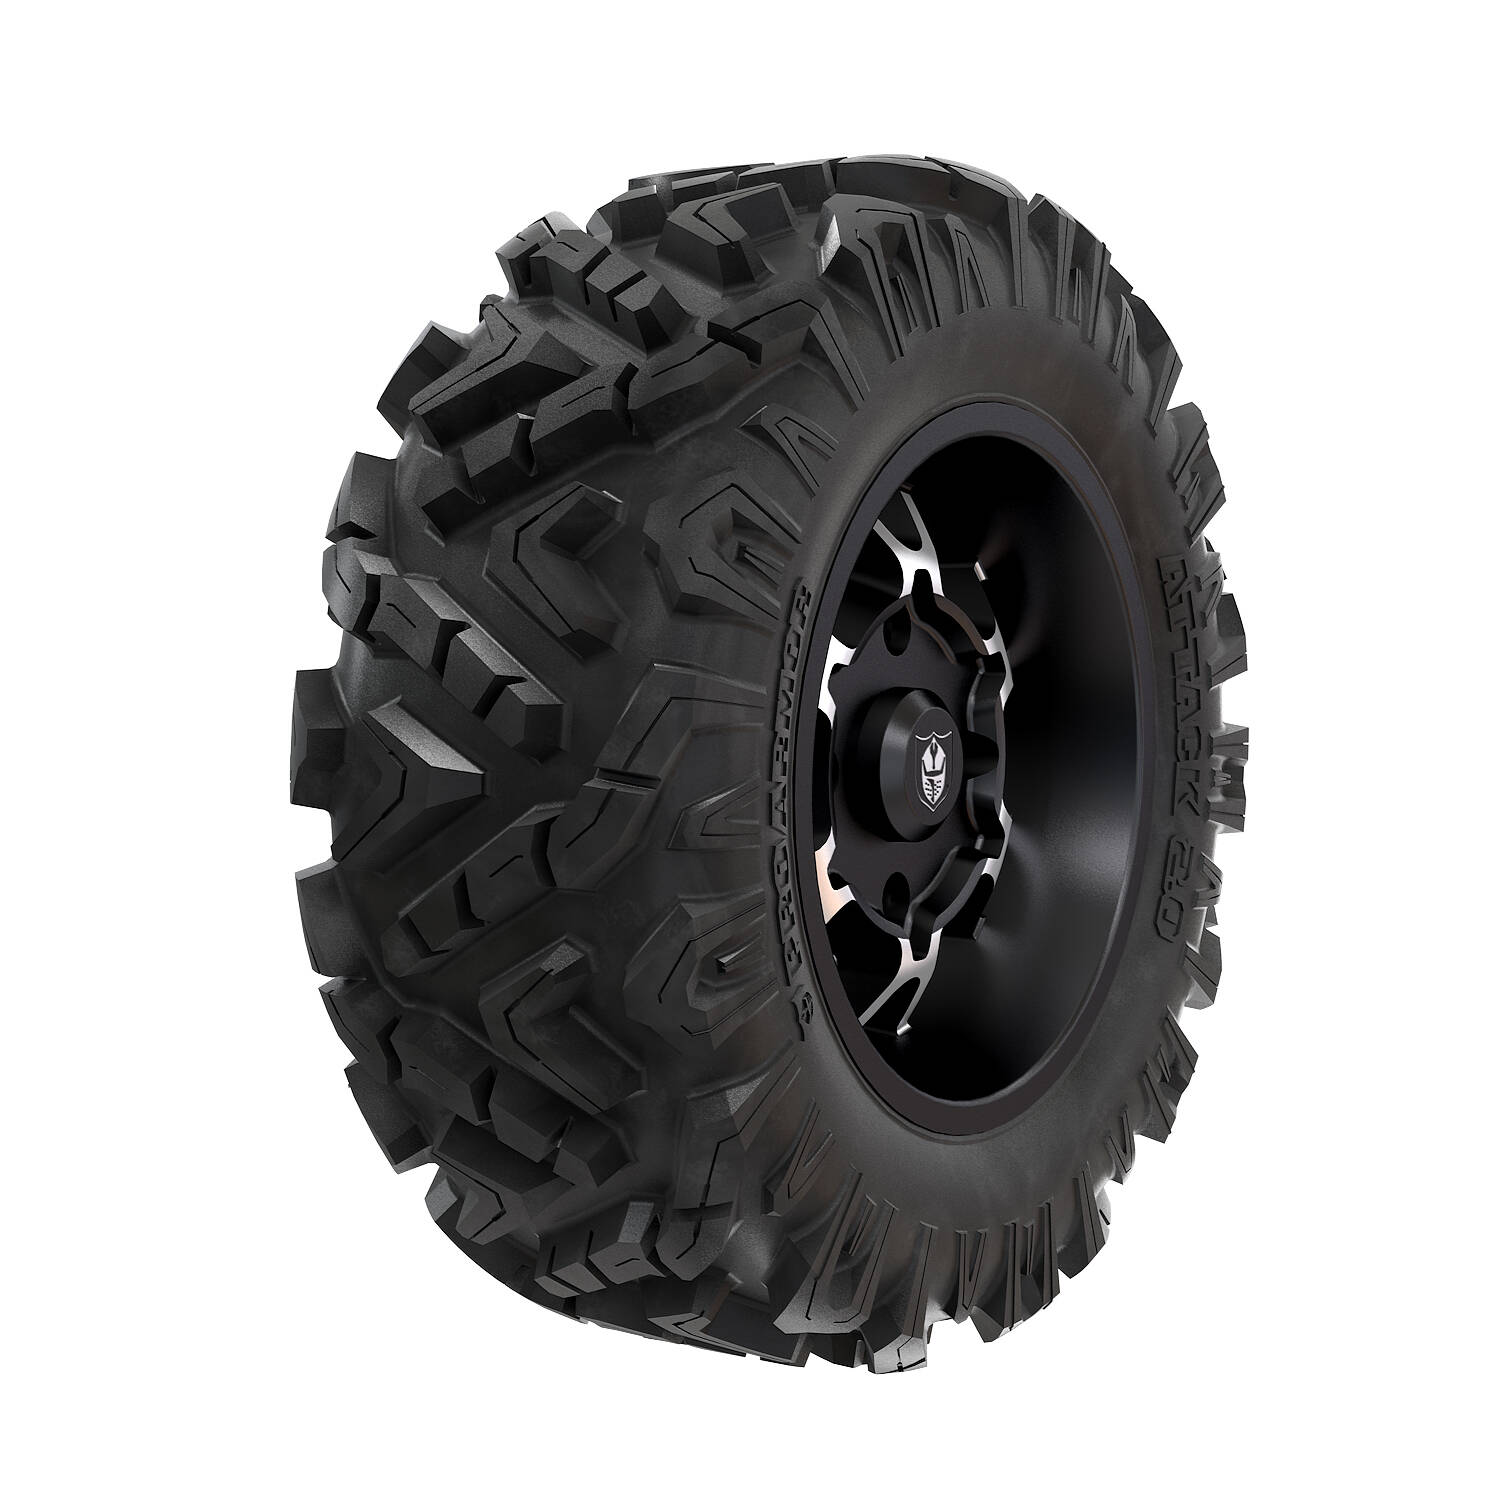 Pro Armor® Wheel & Tire Set: Cyclone - Accent & Attack 2.0 - 28""